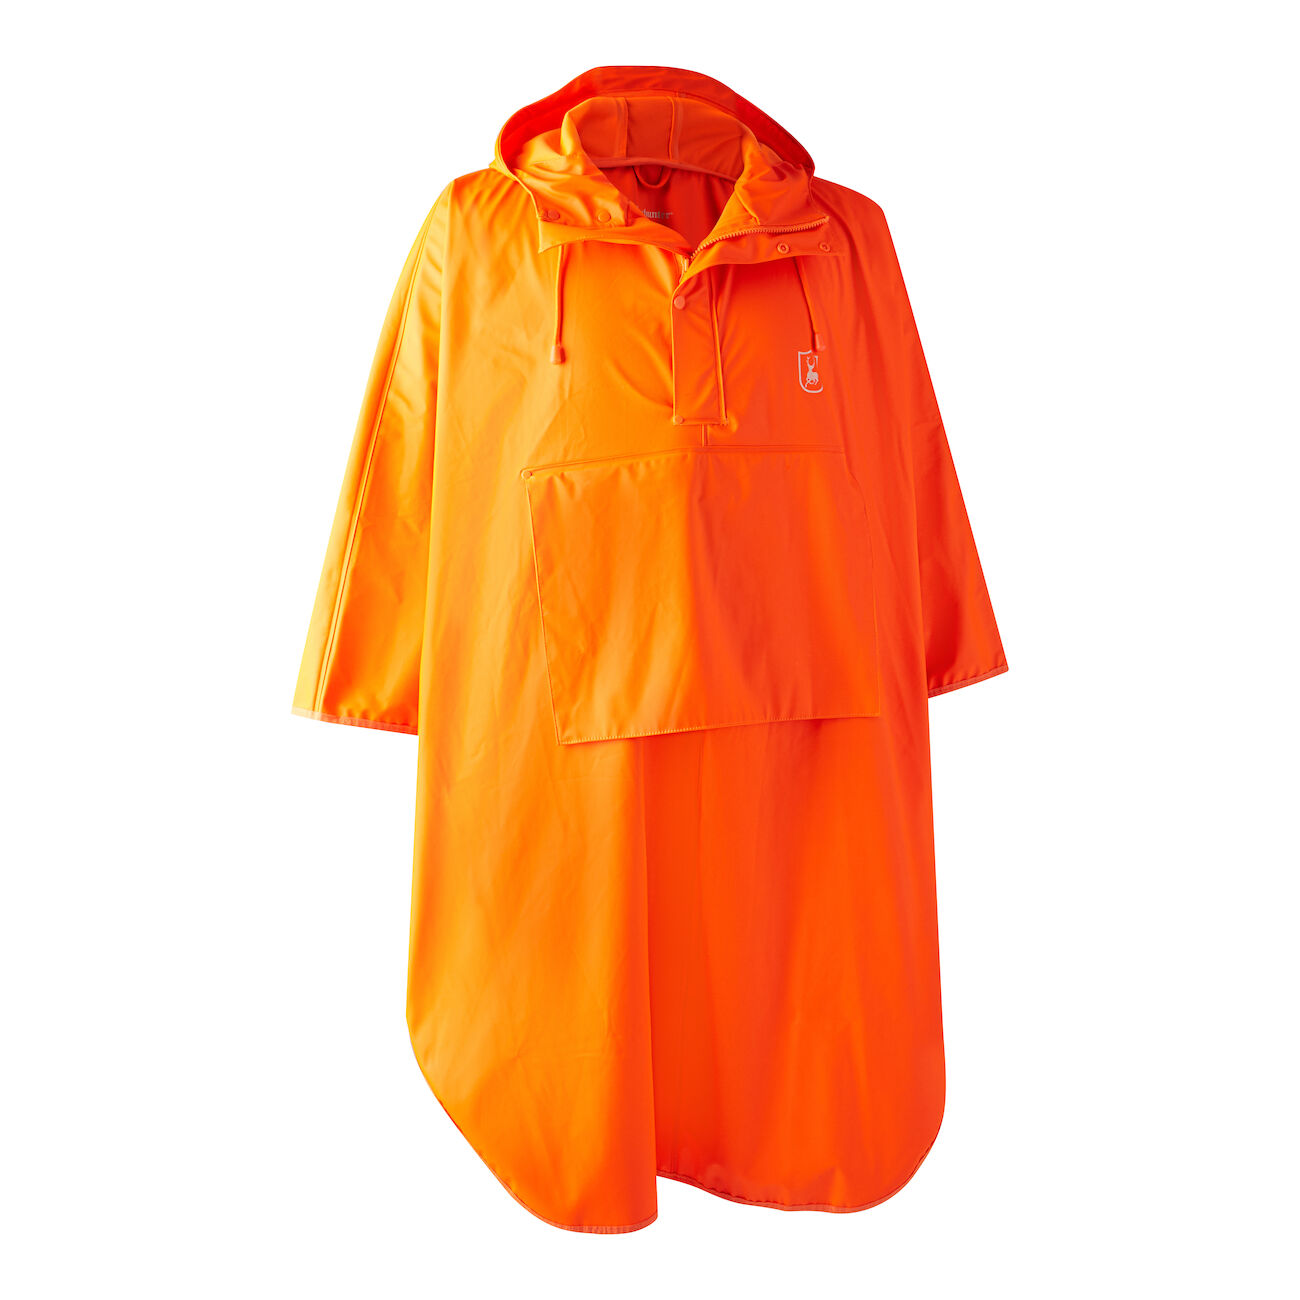 Deerhunter Hurricane Rain Poncho - Orange